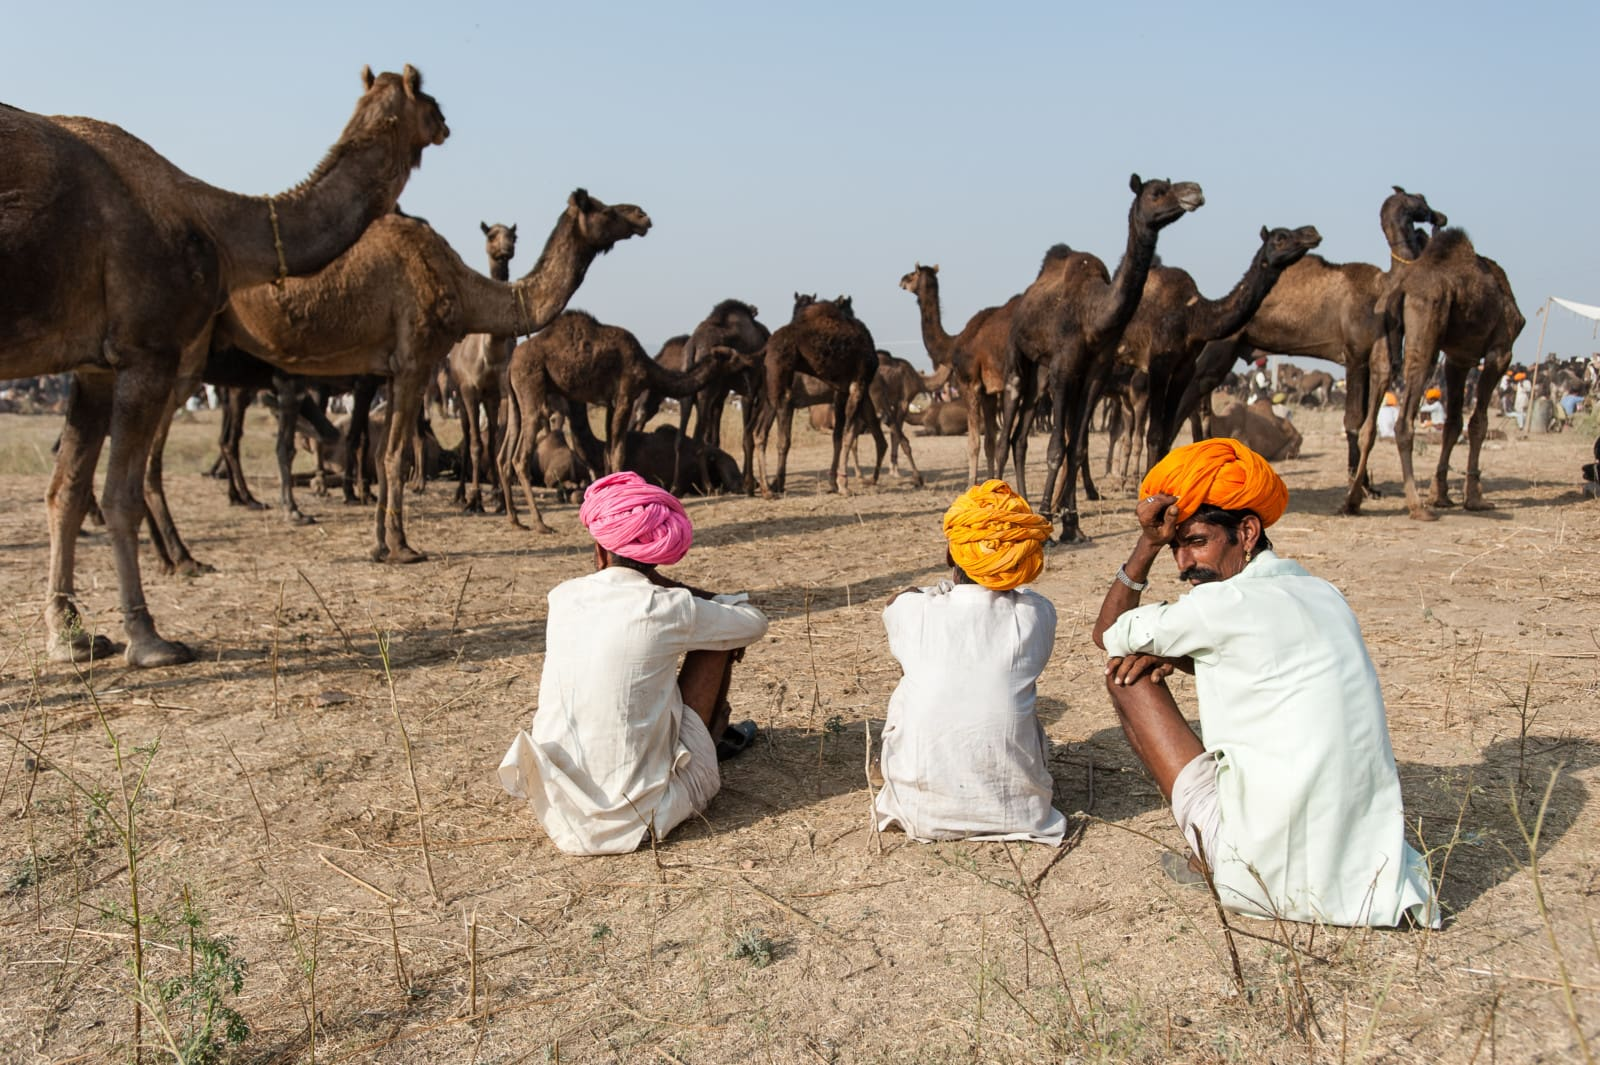 camel-pushkar-camel-fair-traders-london-freelance-photographer-richard-isaac-3200